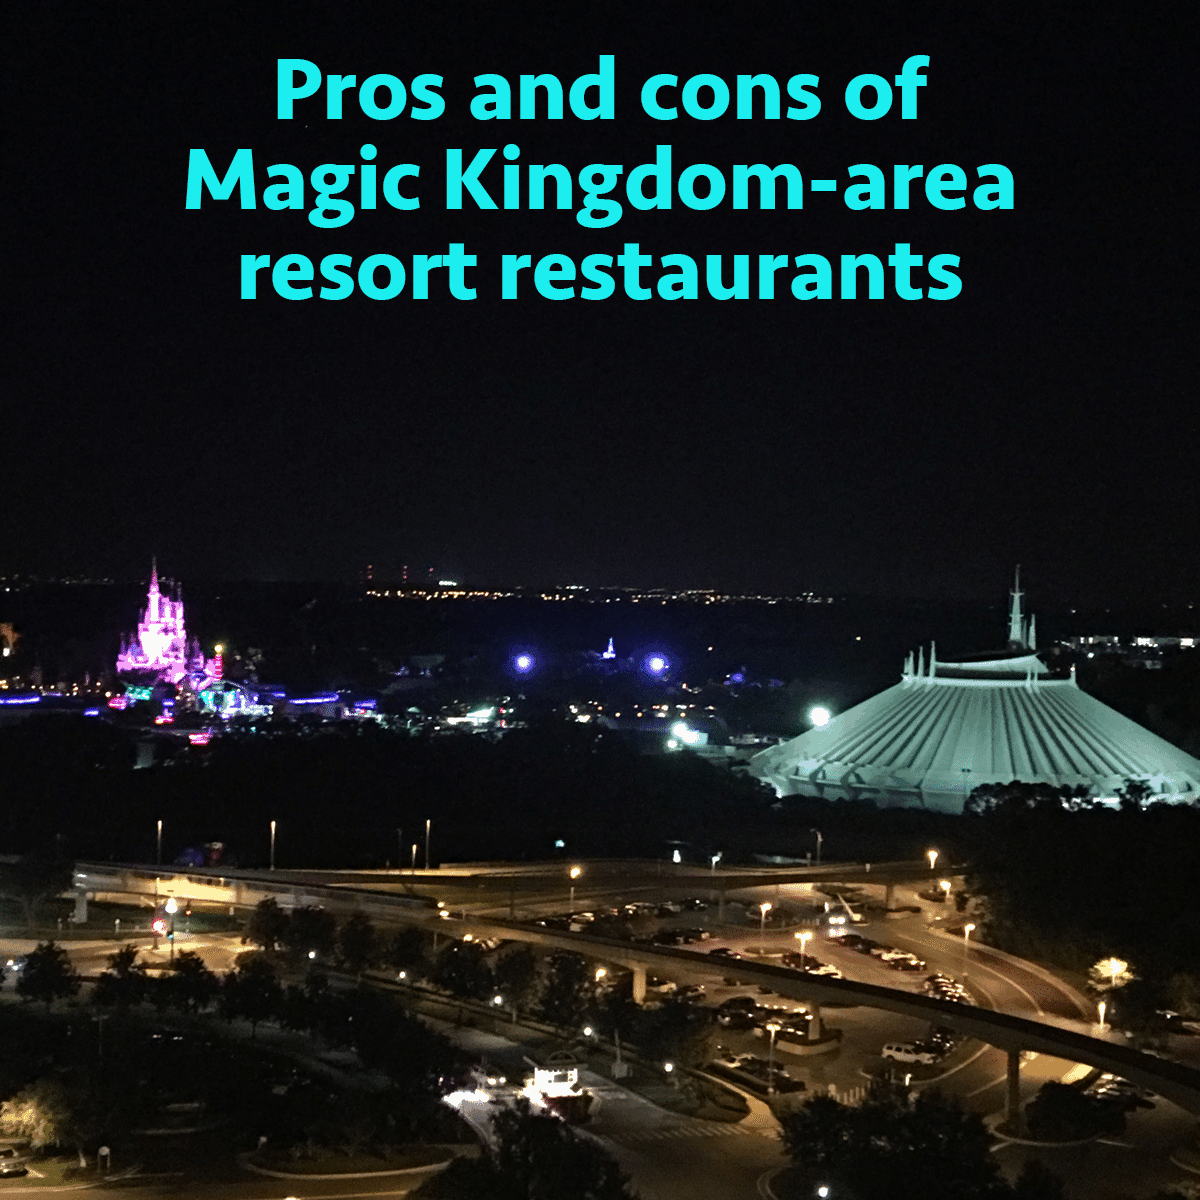 Pros and cons of all Table Service and Quick Service restaurants at Magic Kingdom | Dining at Magic Kingdom